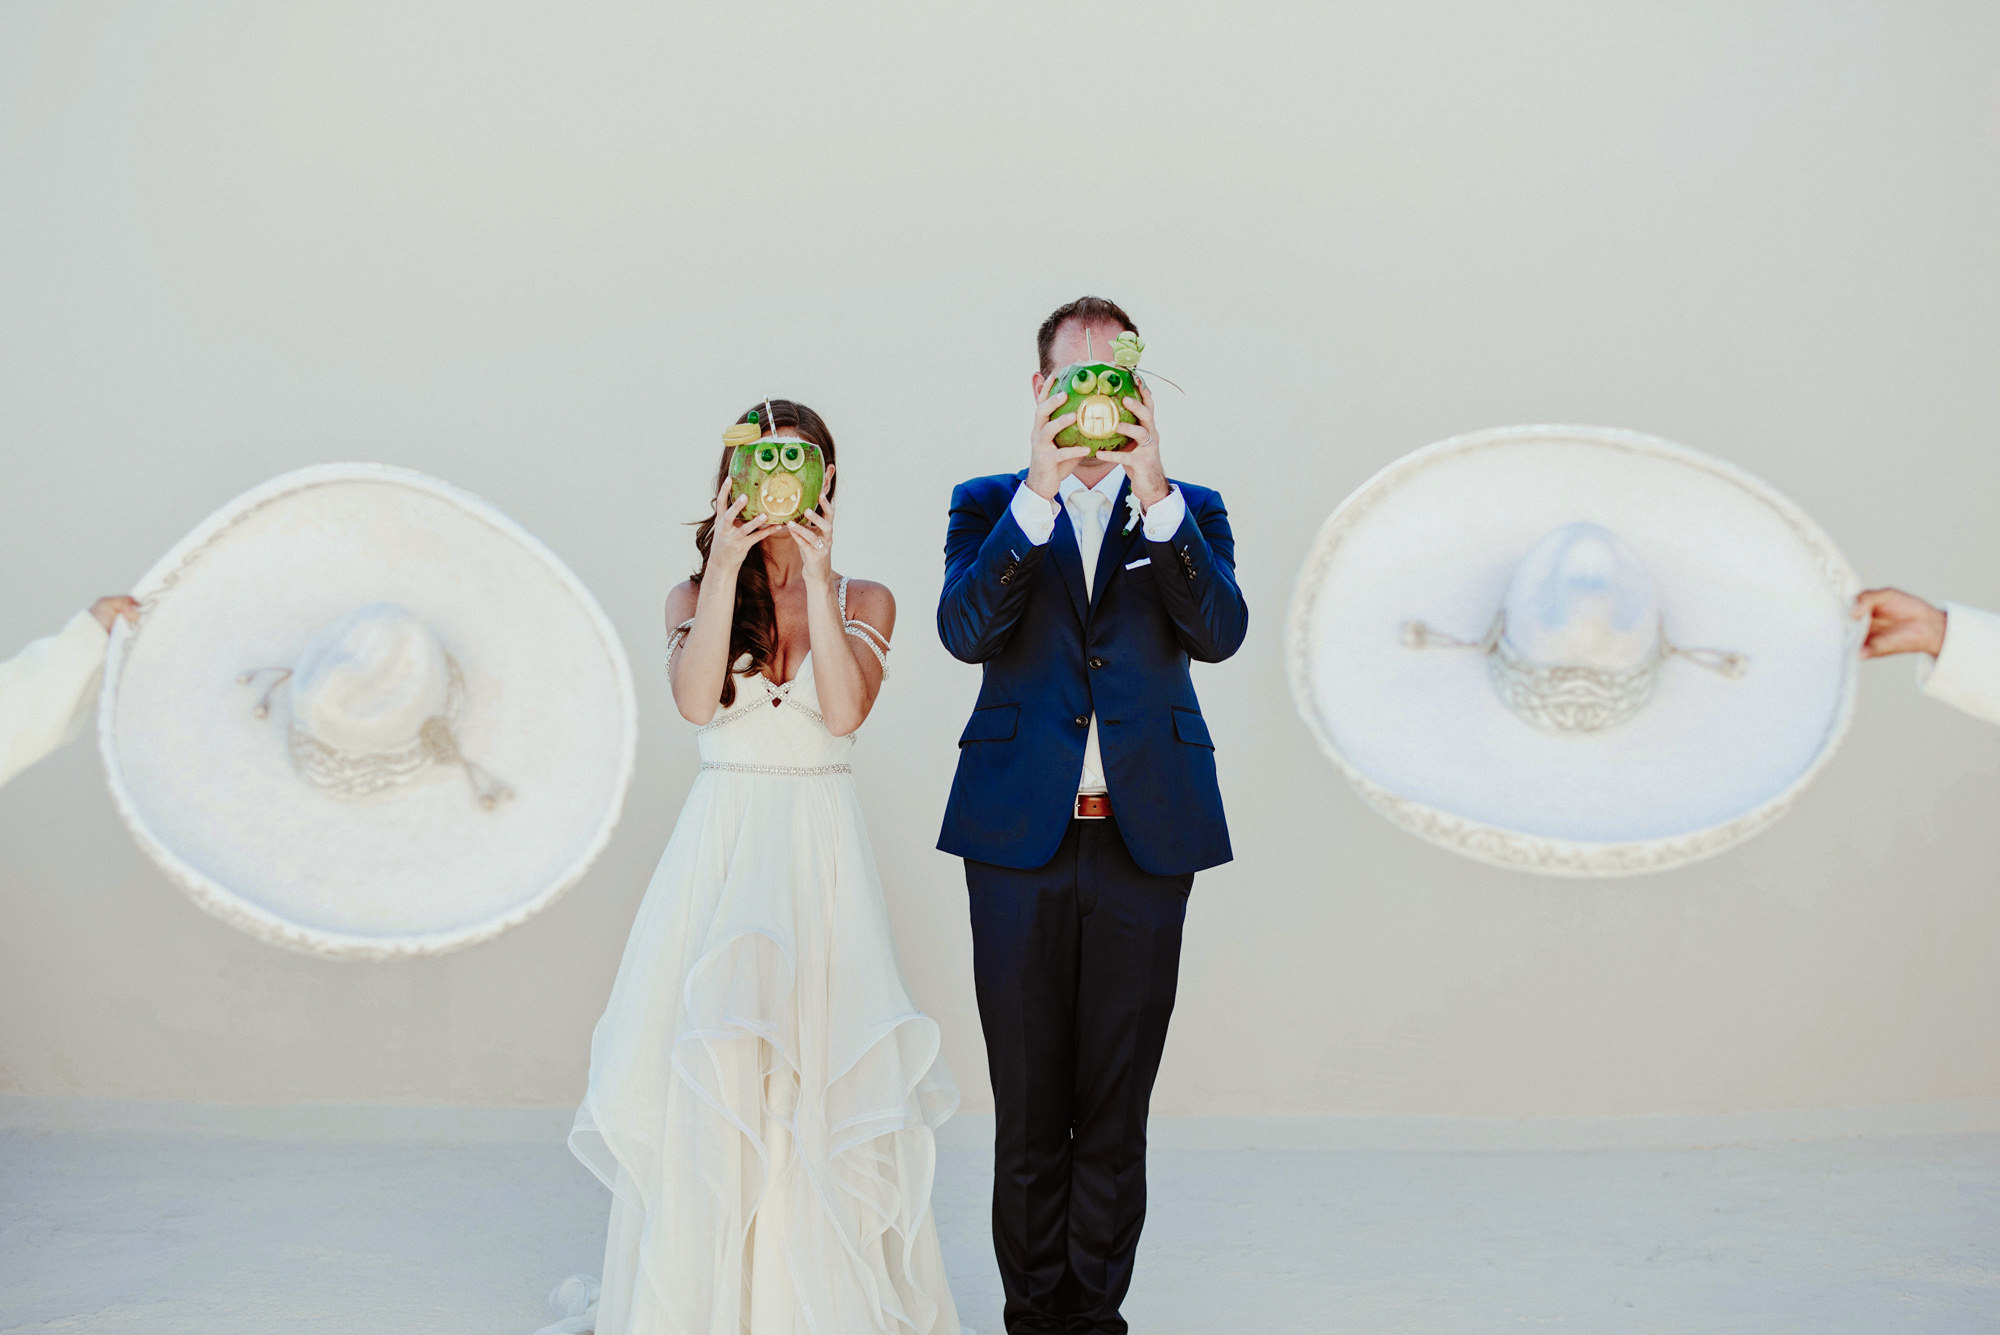 Portrait of bride and groom with coconuts in front of their faces by Fer Juaristi - Mexico